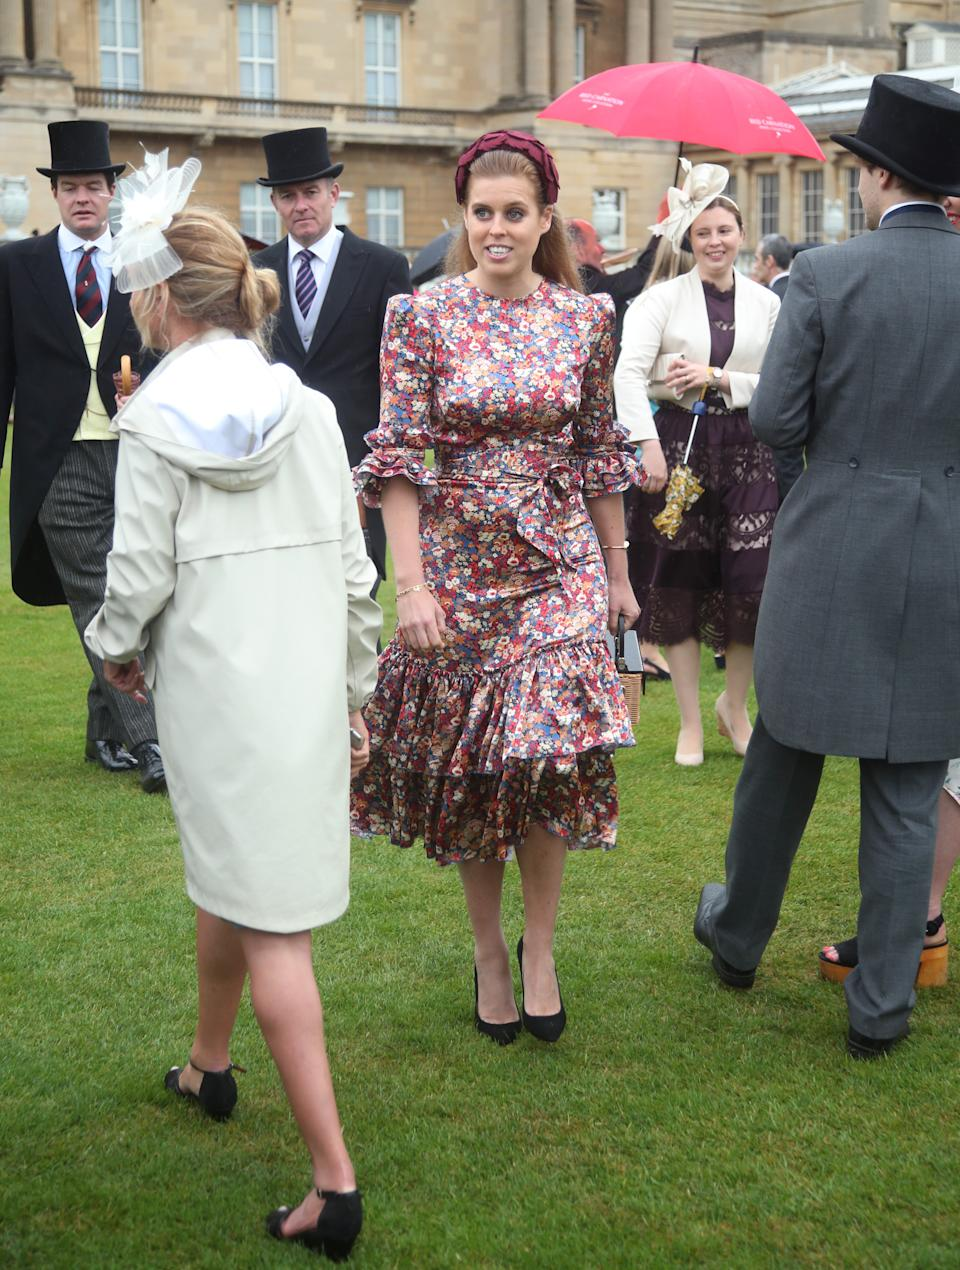 LONDON, ENGLAND - MAY 29: Princess Beatrice attends the Royal Garden Party at Buckingham Palace on May 29, 2019 in London, England. (Photo by Yui Mok - WPA Pool/Getty Images)